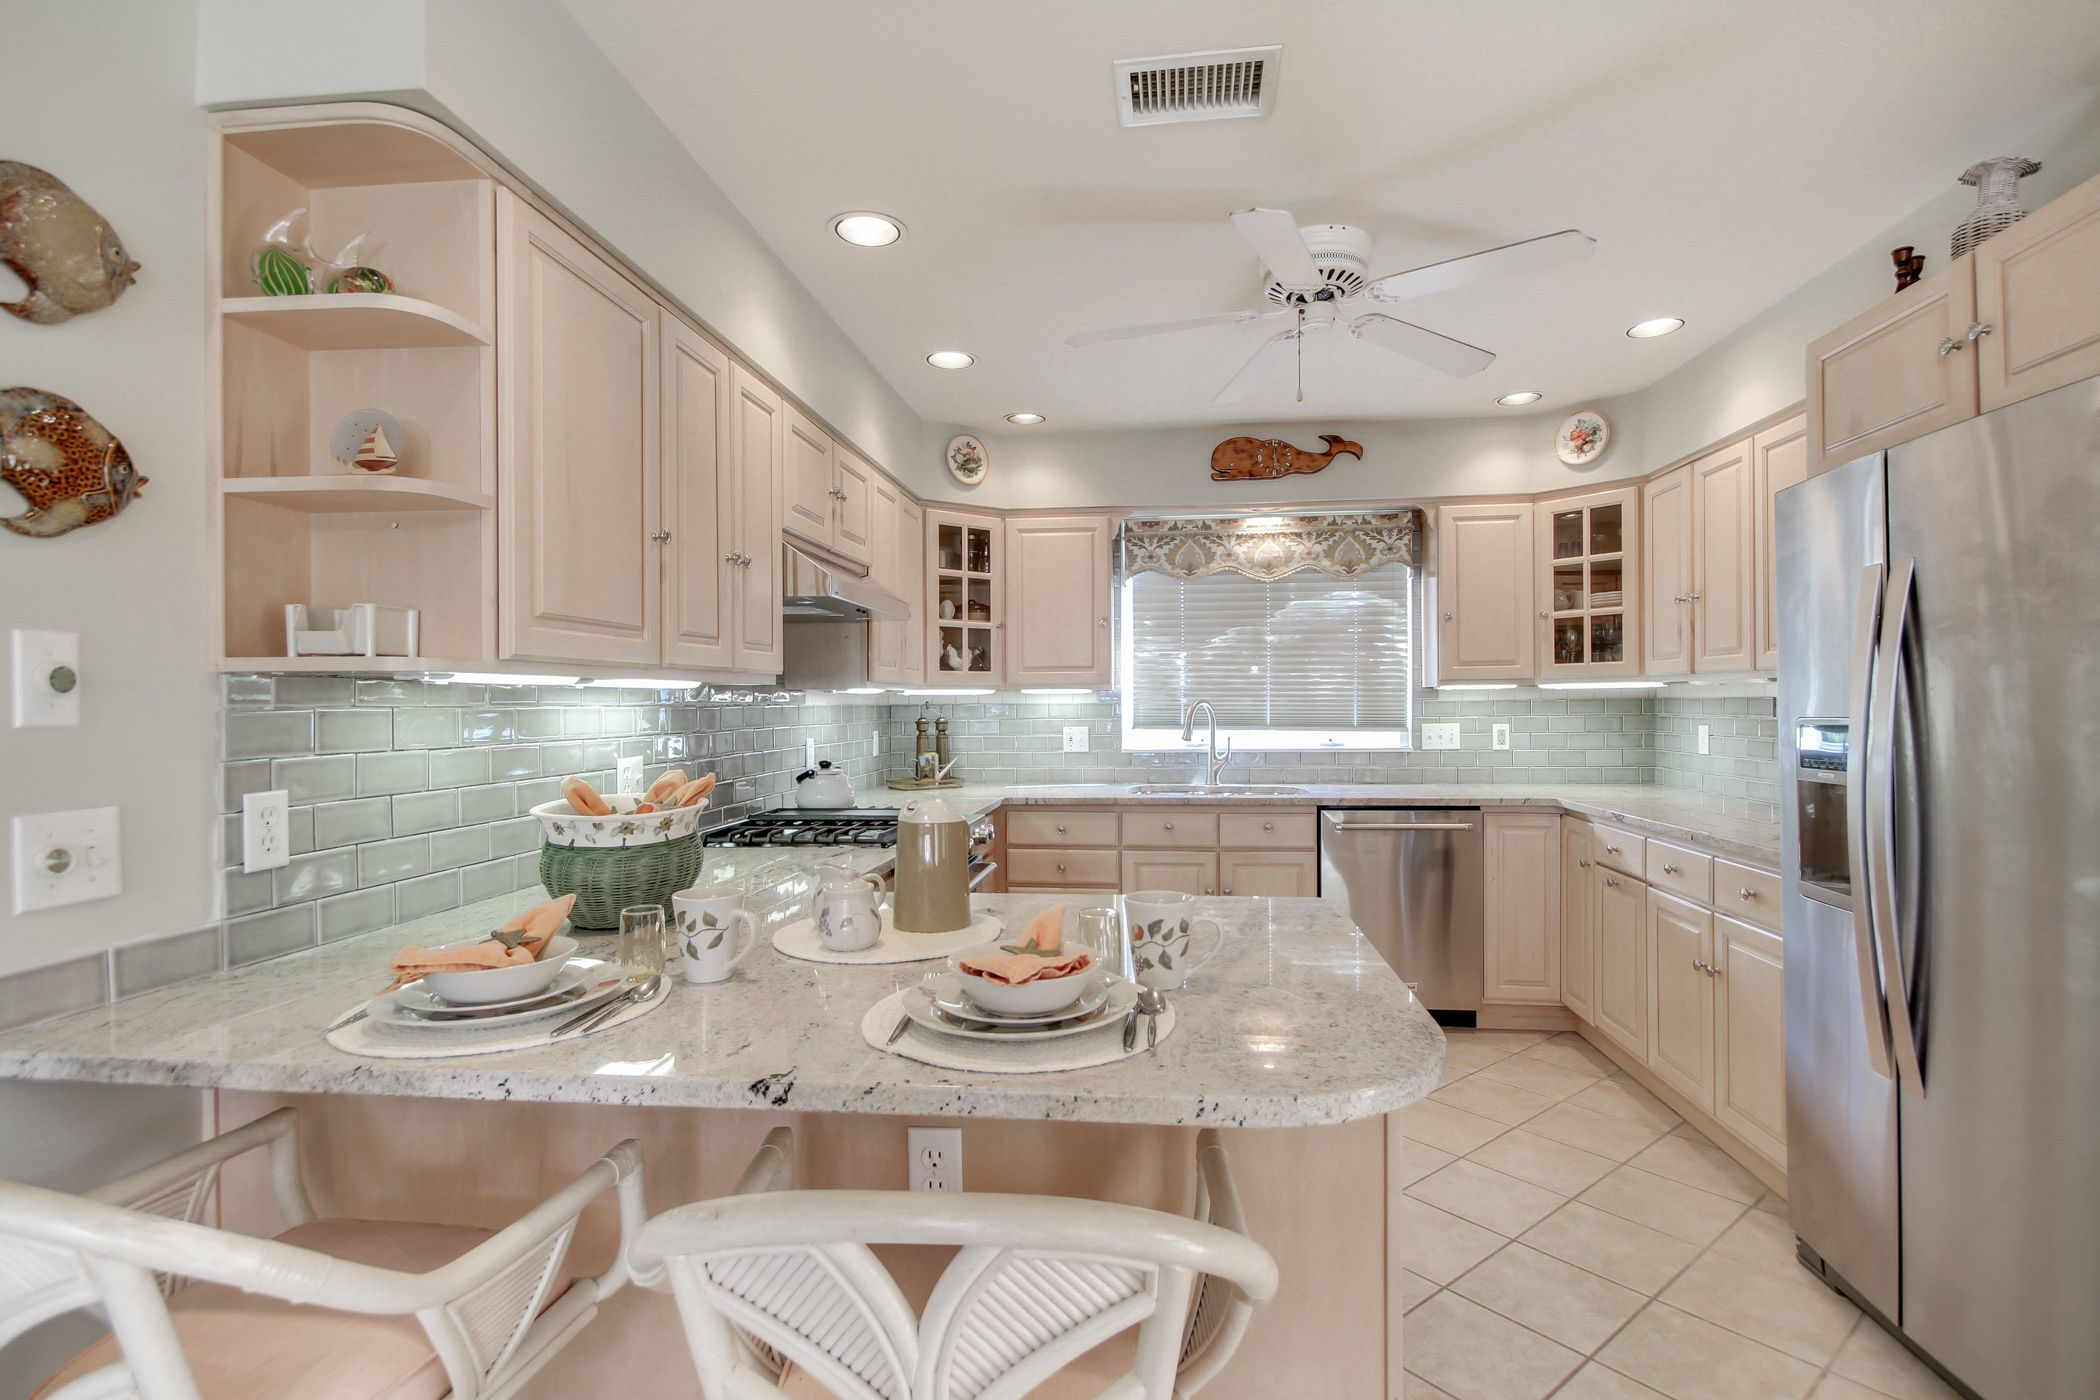 Beach House Kitchen With Crema Astoria Granite Countertops And A